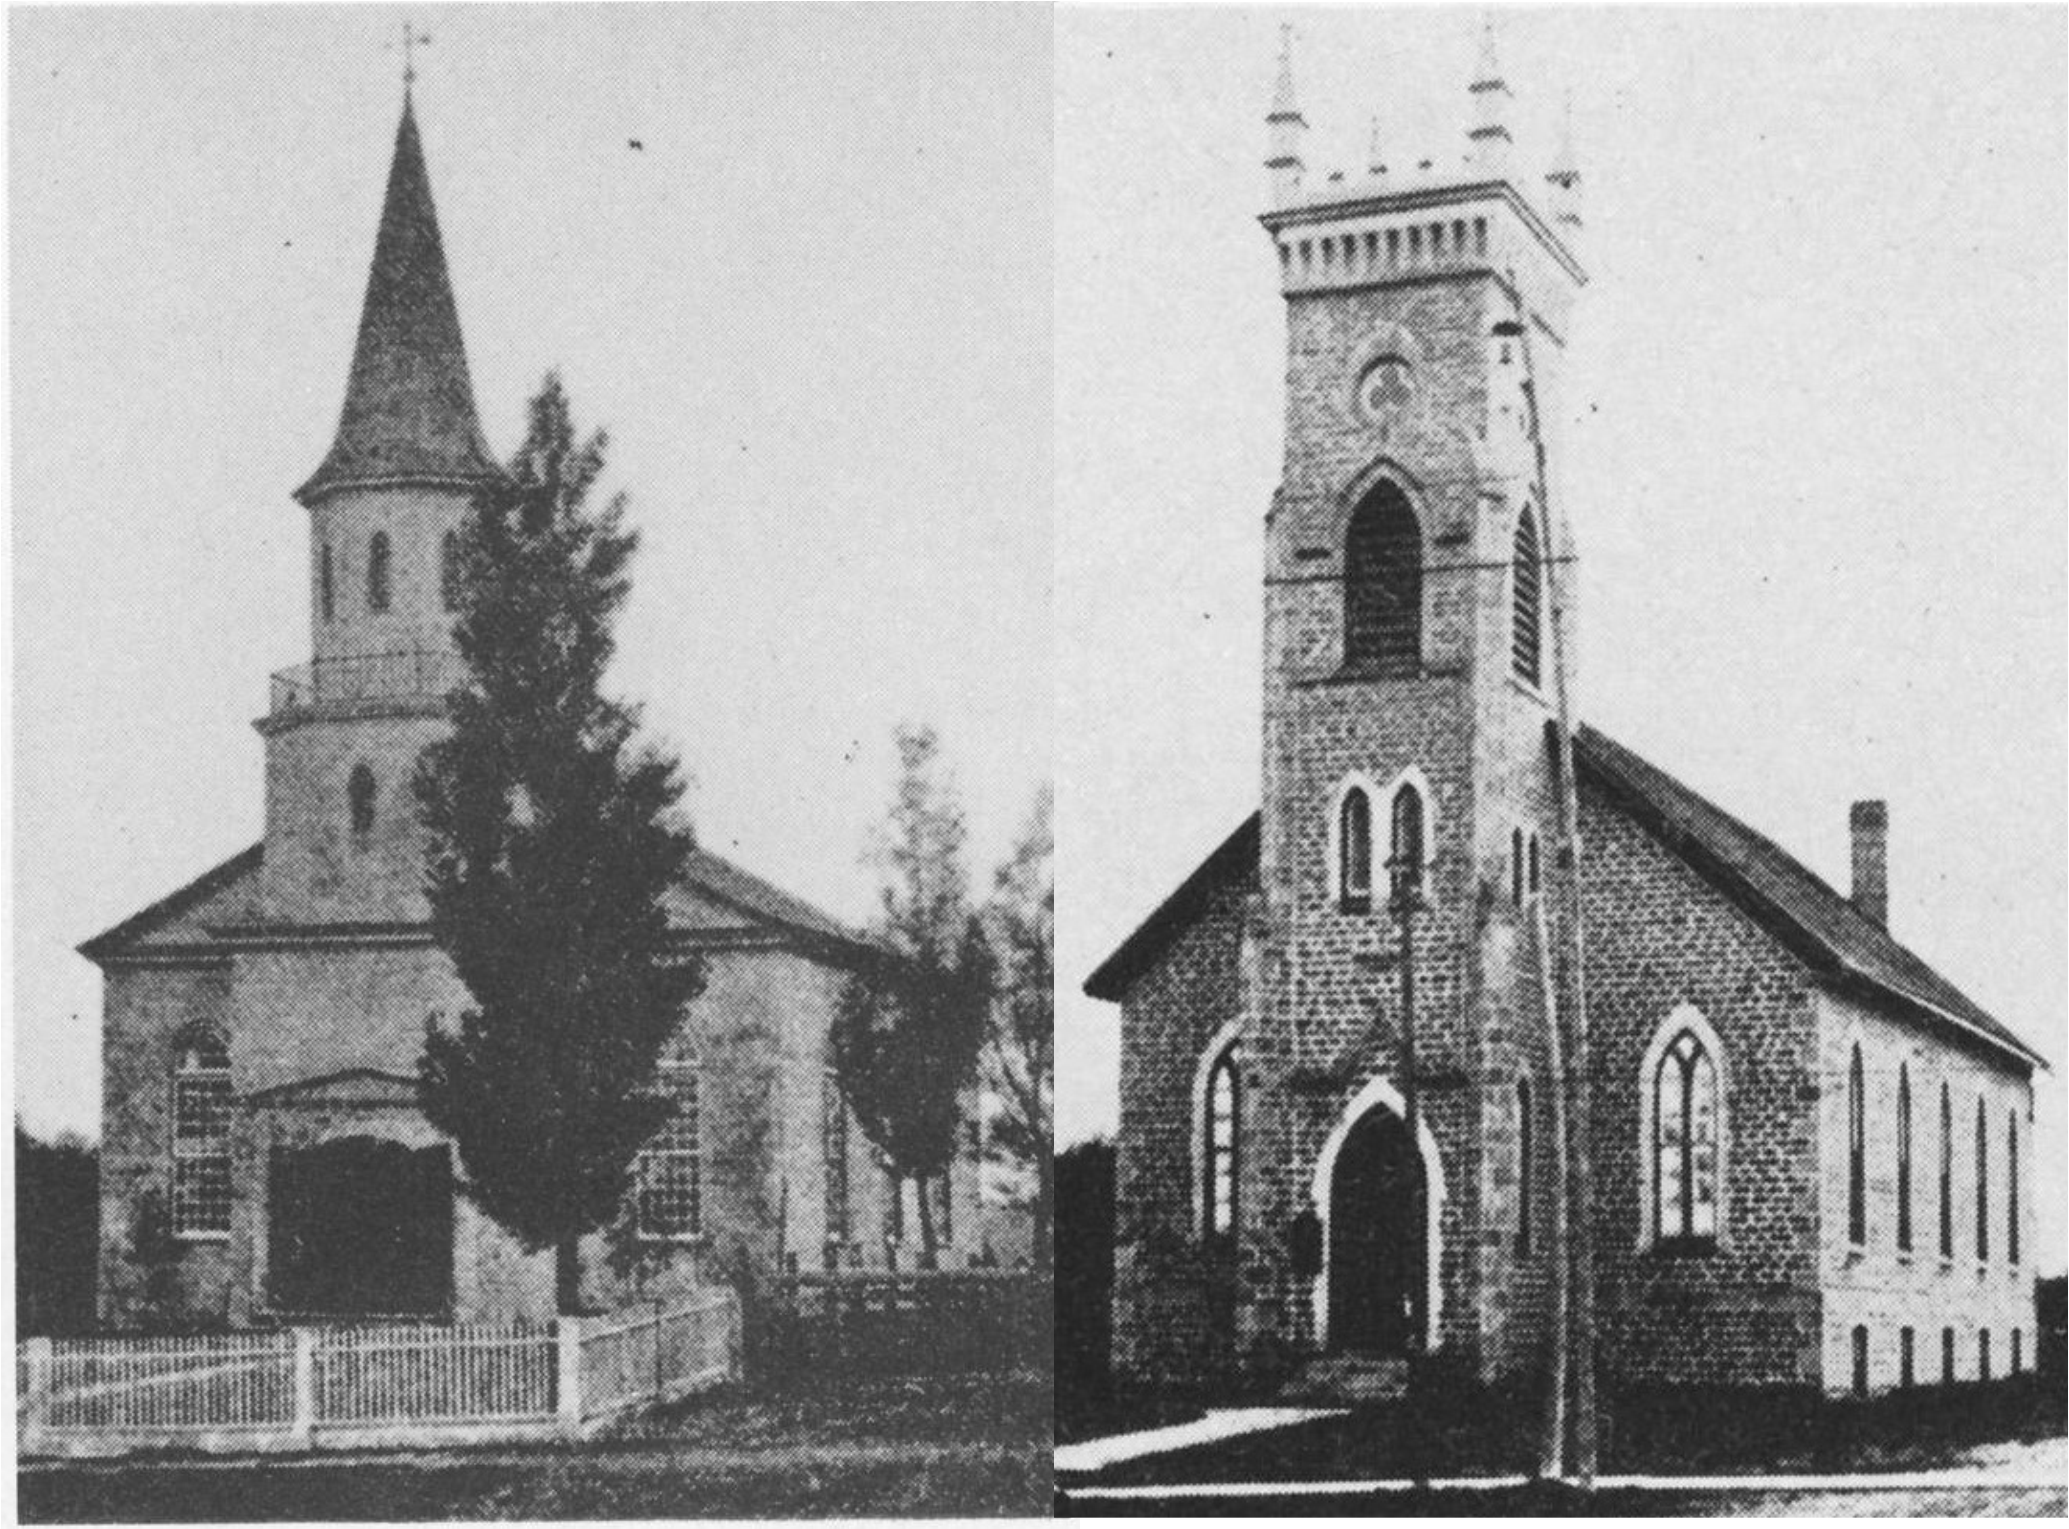 St. Peter's. Left: Old Frame Church: 1842-1887, Right: Original Stone Church: 1997-1958